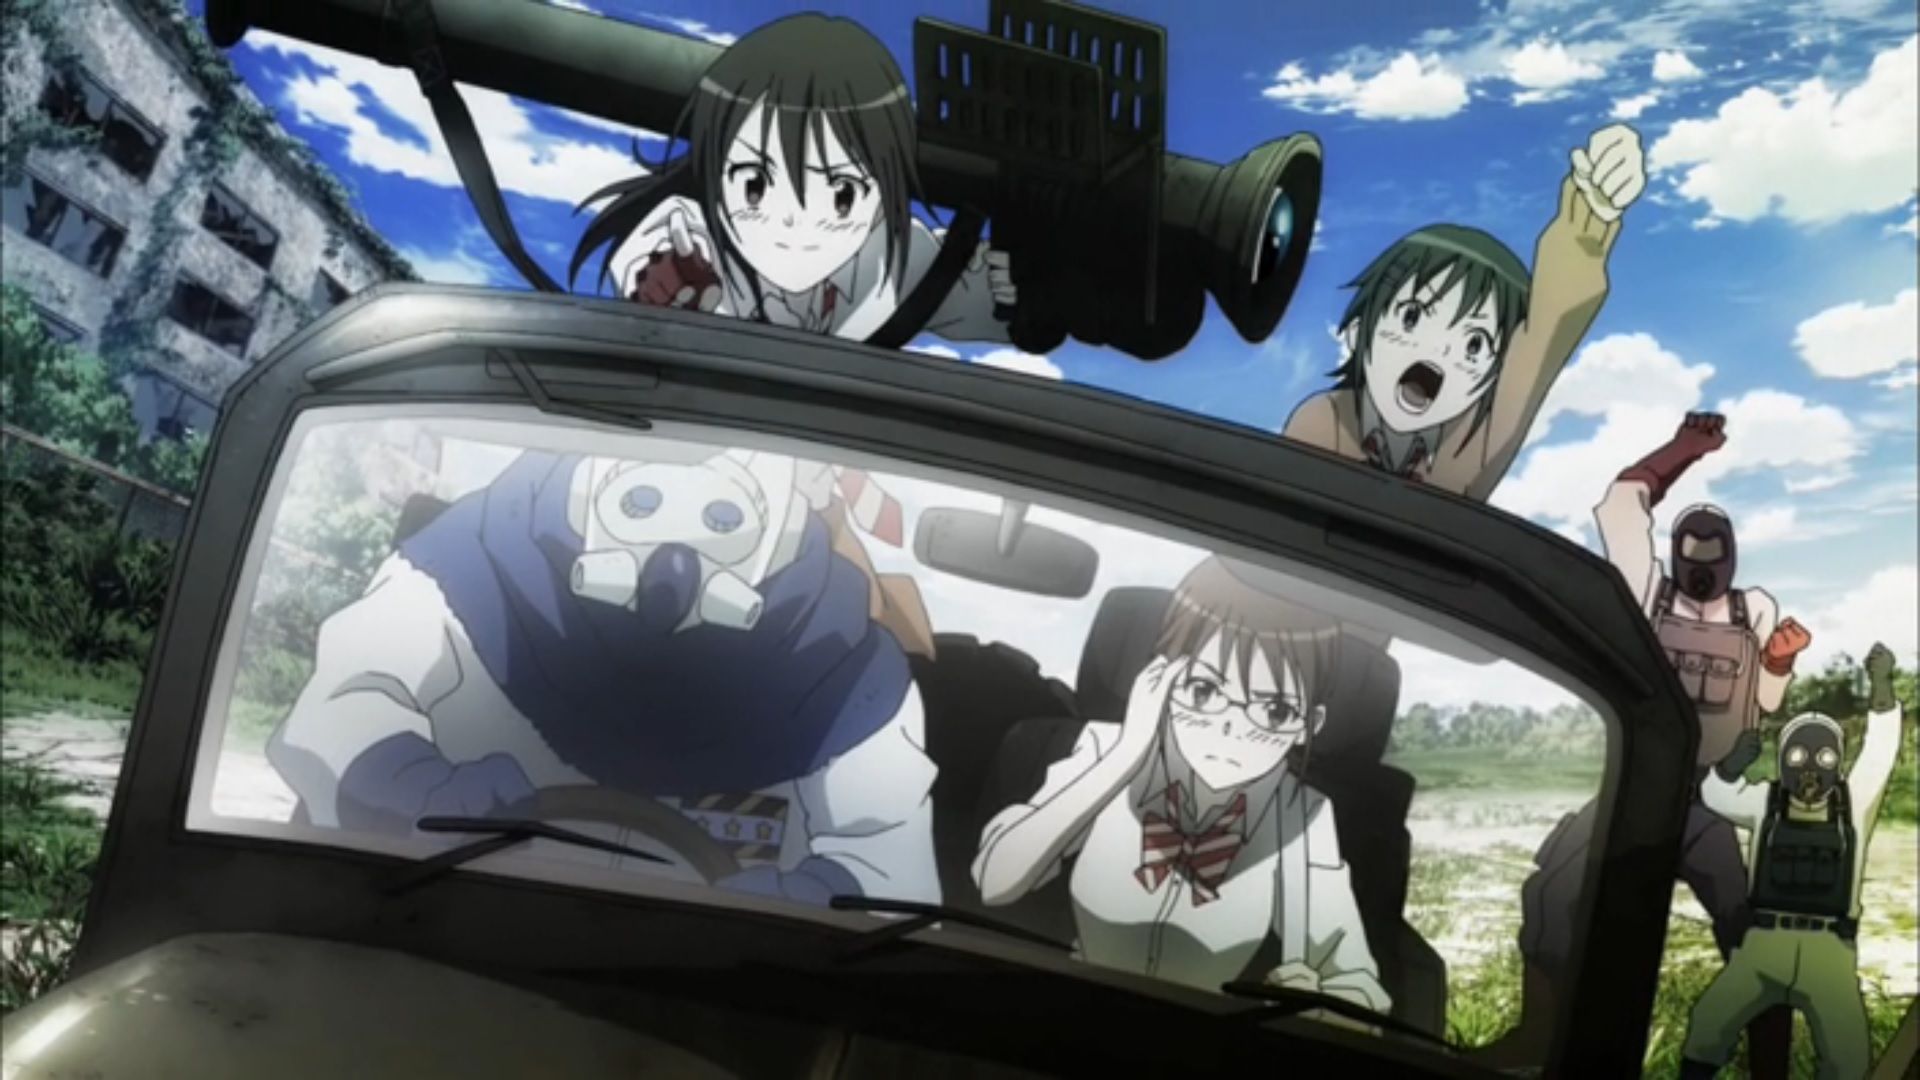 Coppelion Episode 3 Review: Enter the Delivery Man